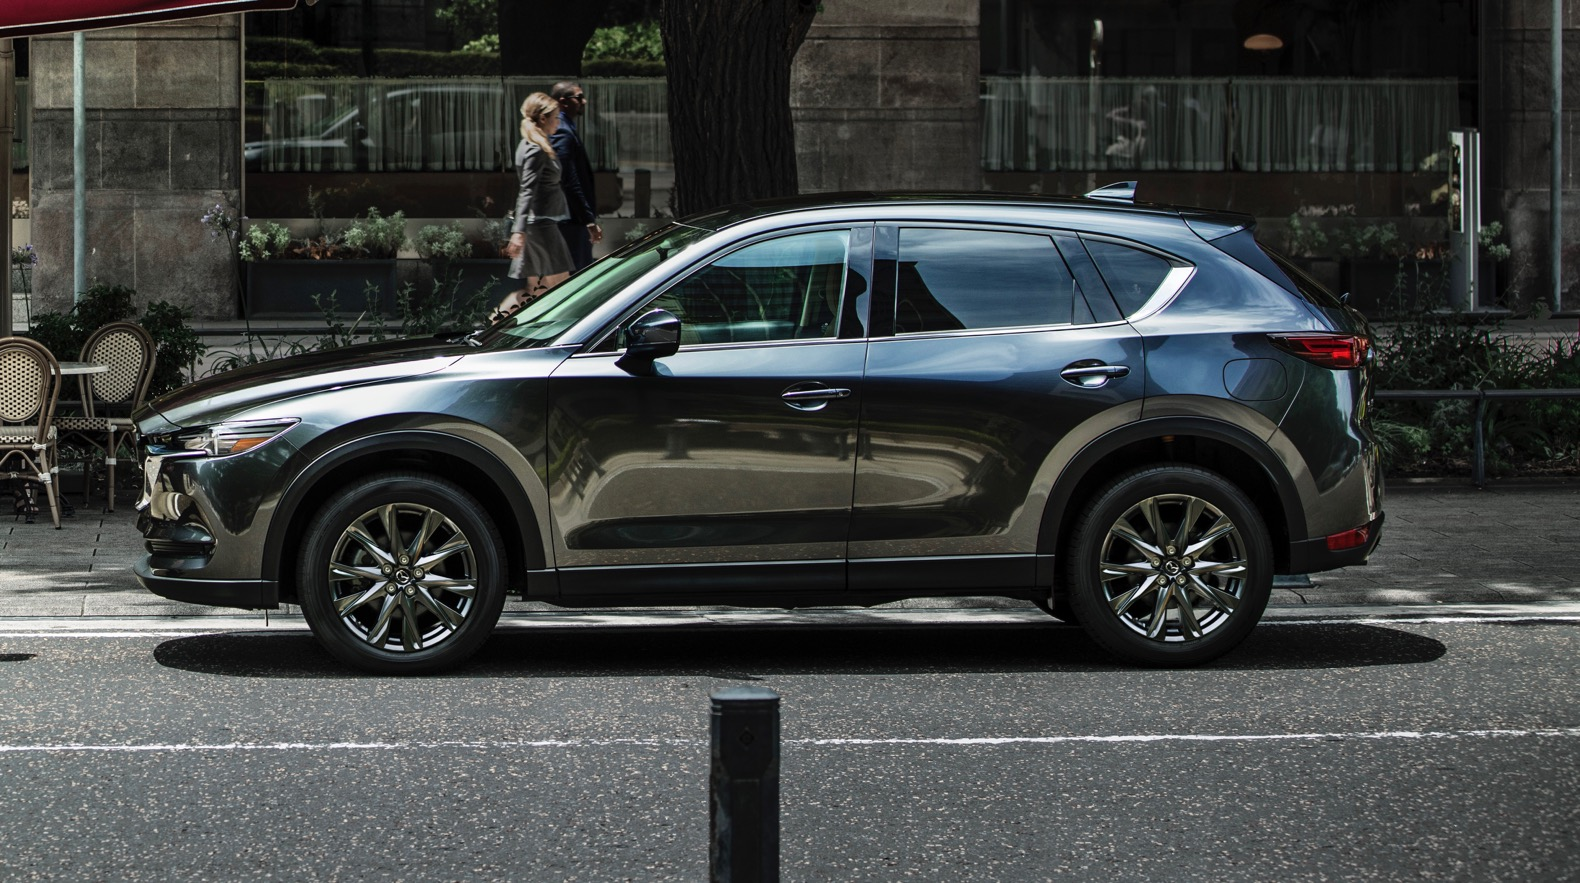 2019-Mazda-CX-5--2.5L turbo